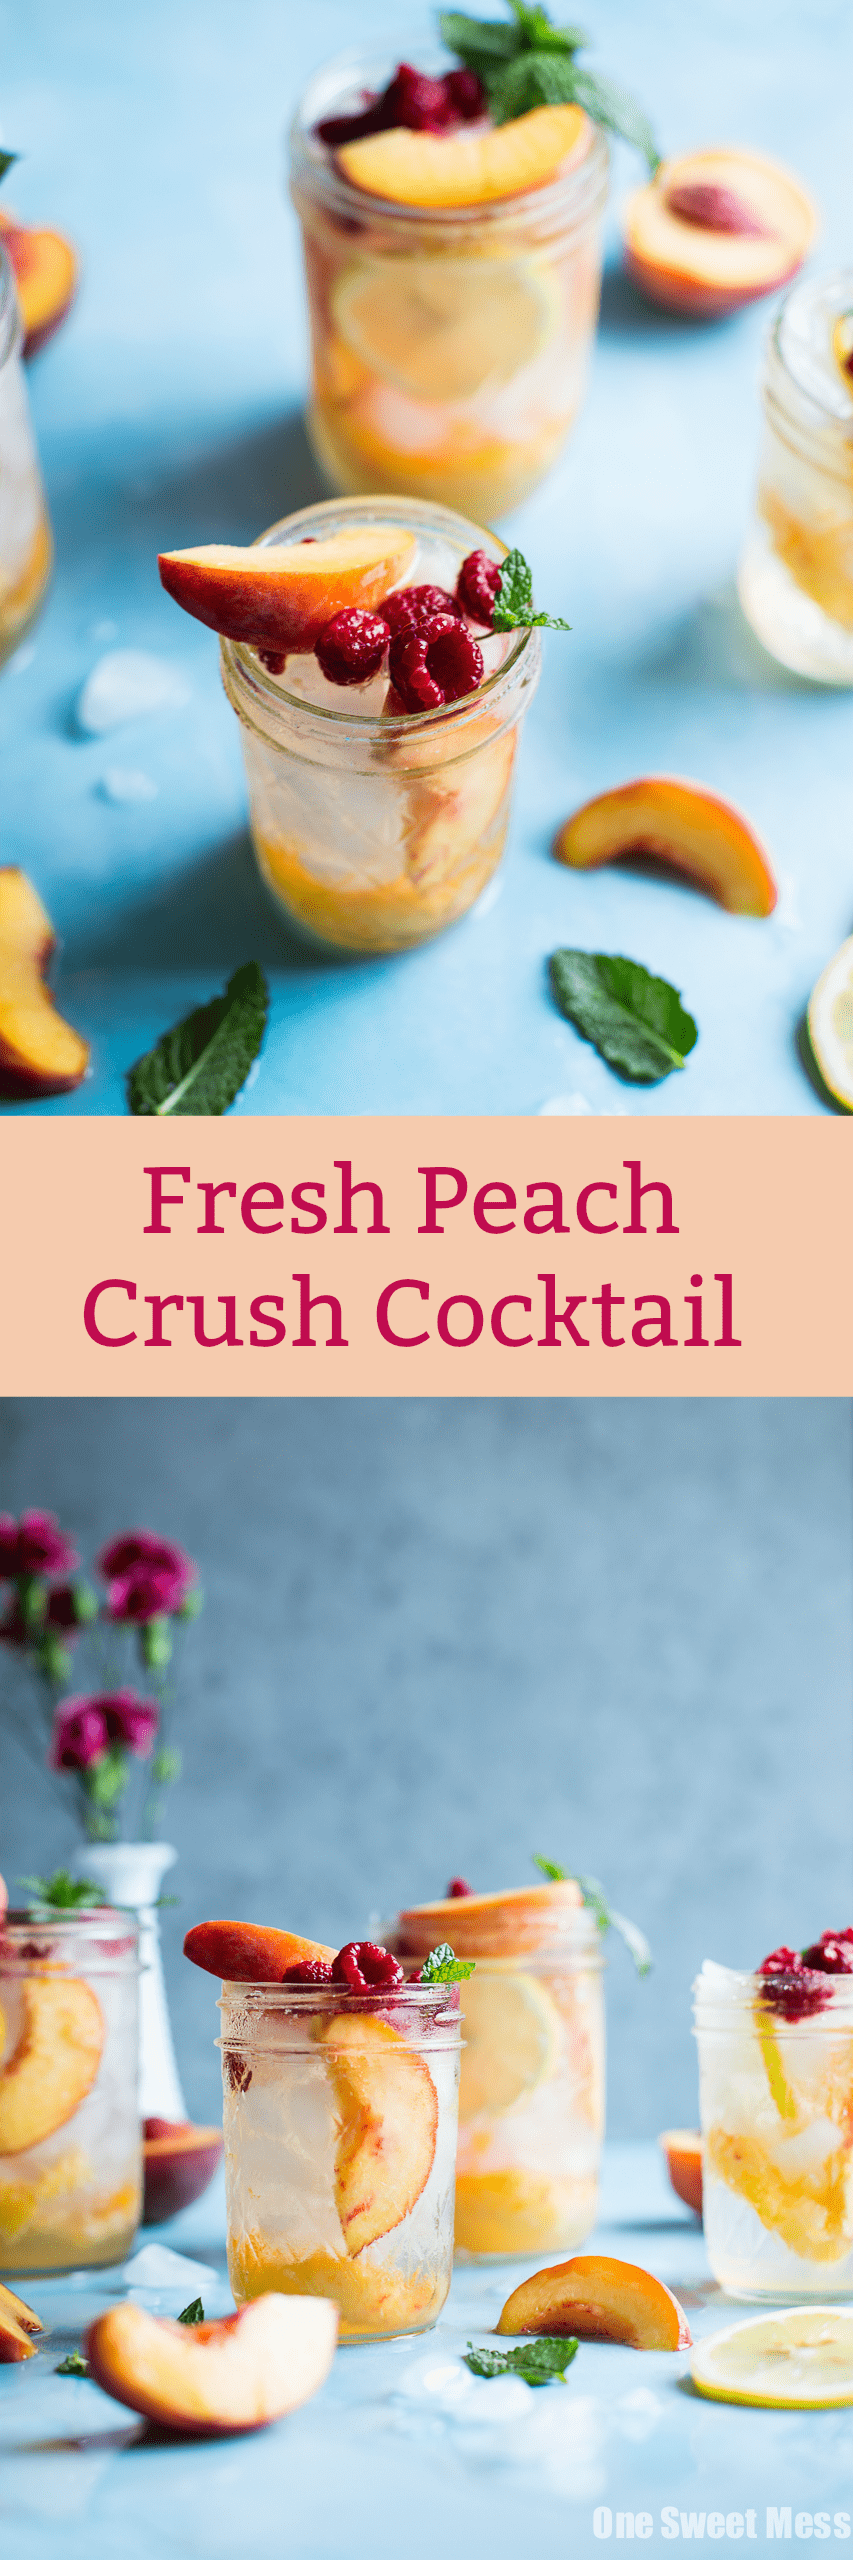 Fresh Peach Crush Cocktail: This summer inspired cocktail doesn't skimp on ripe peach flavor.